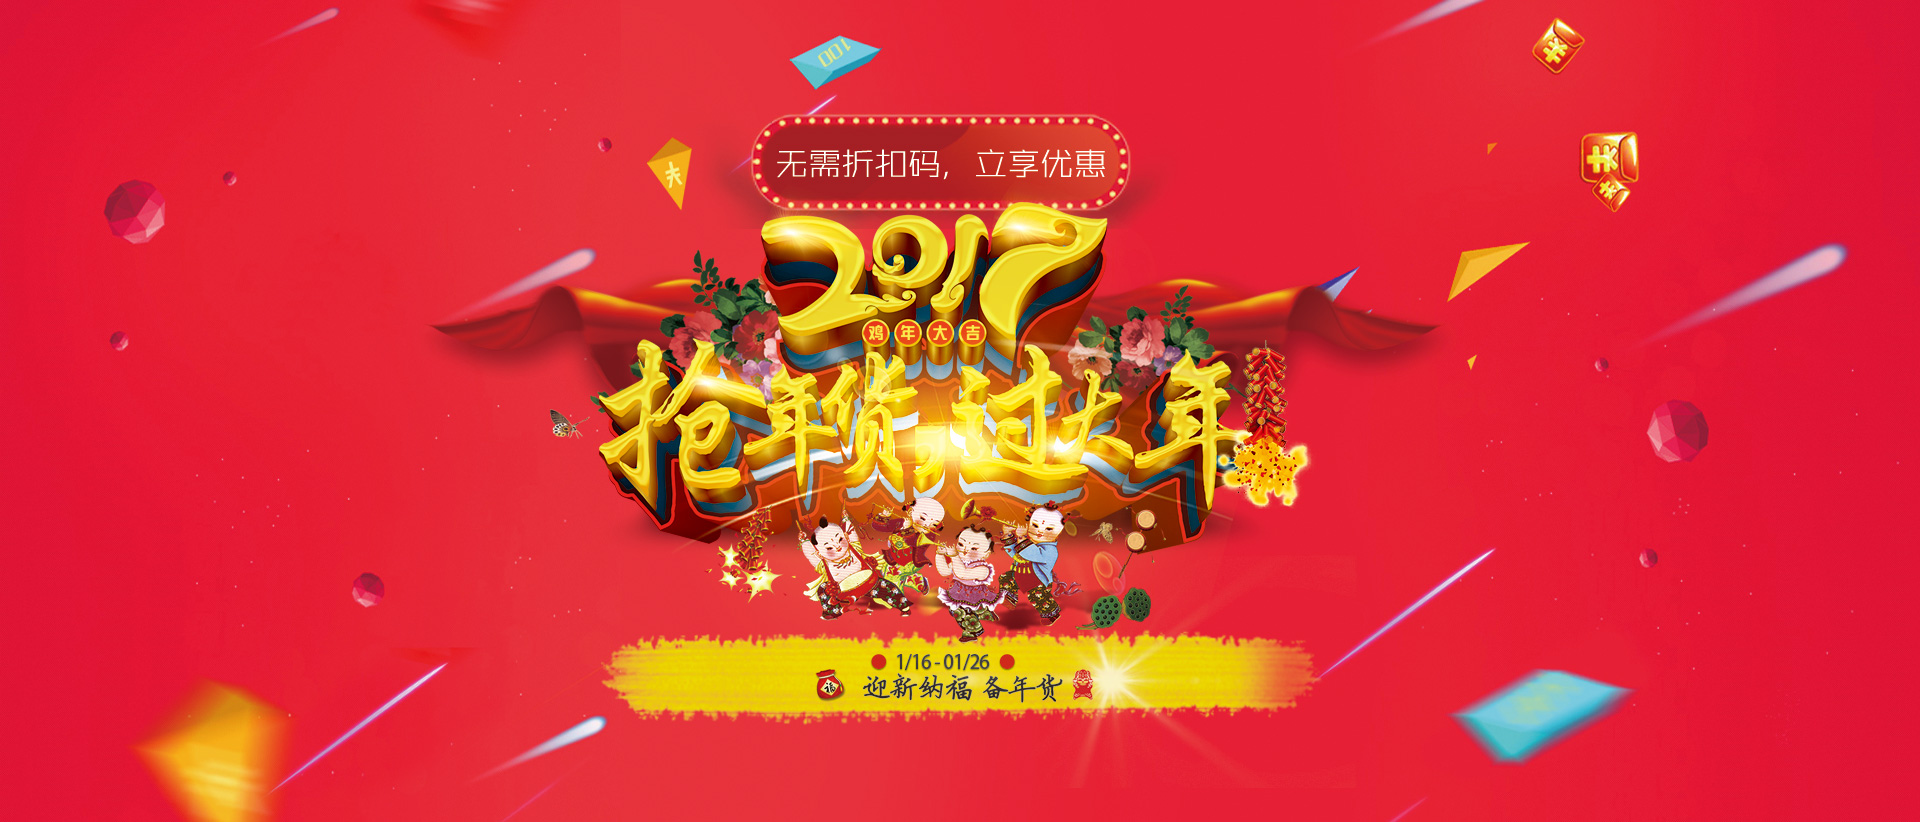 2017-Lunar-New-Year8.jpg